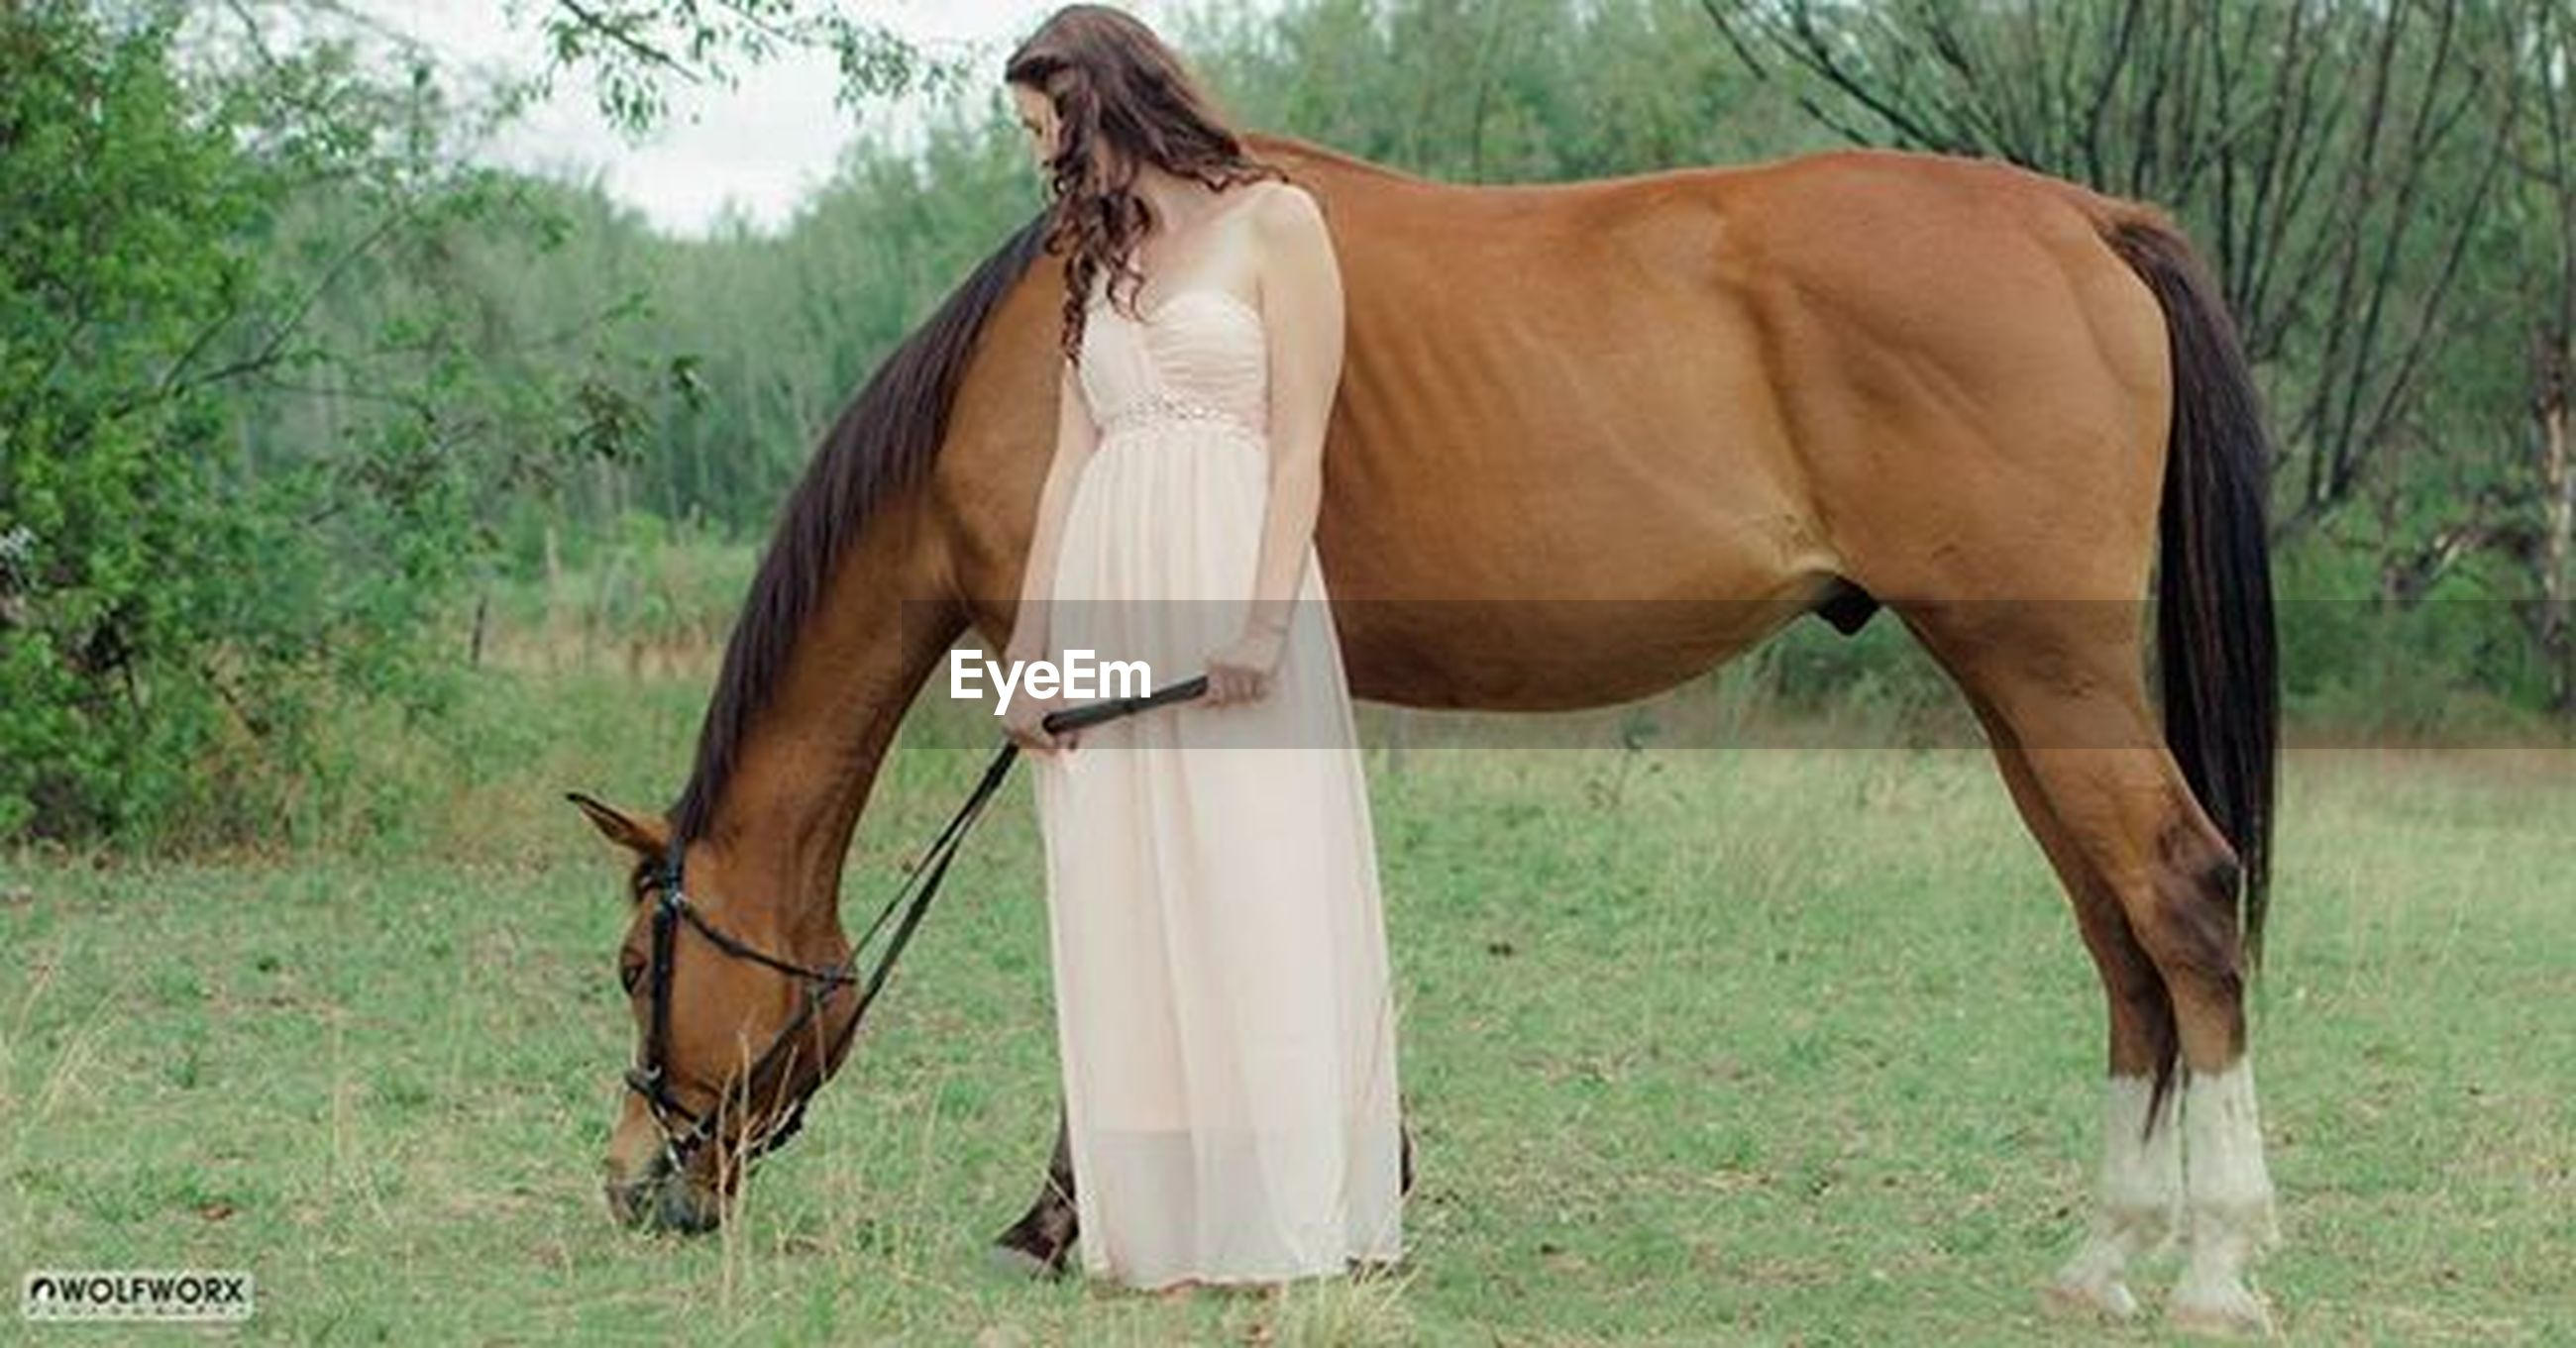 horse, animal themes, mammal, herbivorous, field, livestock, grass, standing, domestic animals, working animal, two animals, brown, one animal, side view, grassy, grazing, full length, nature, day, tree